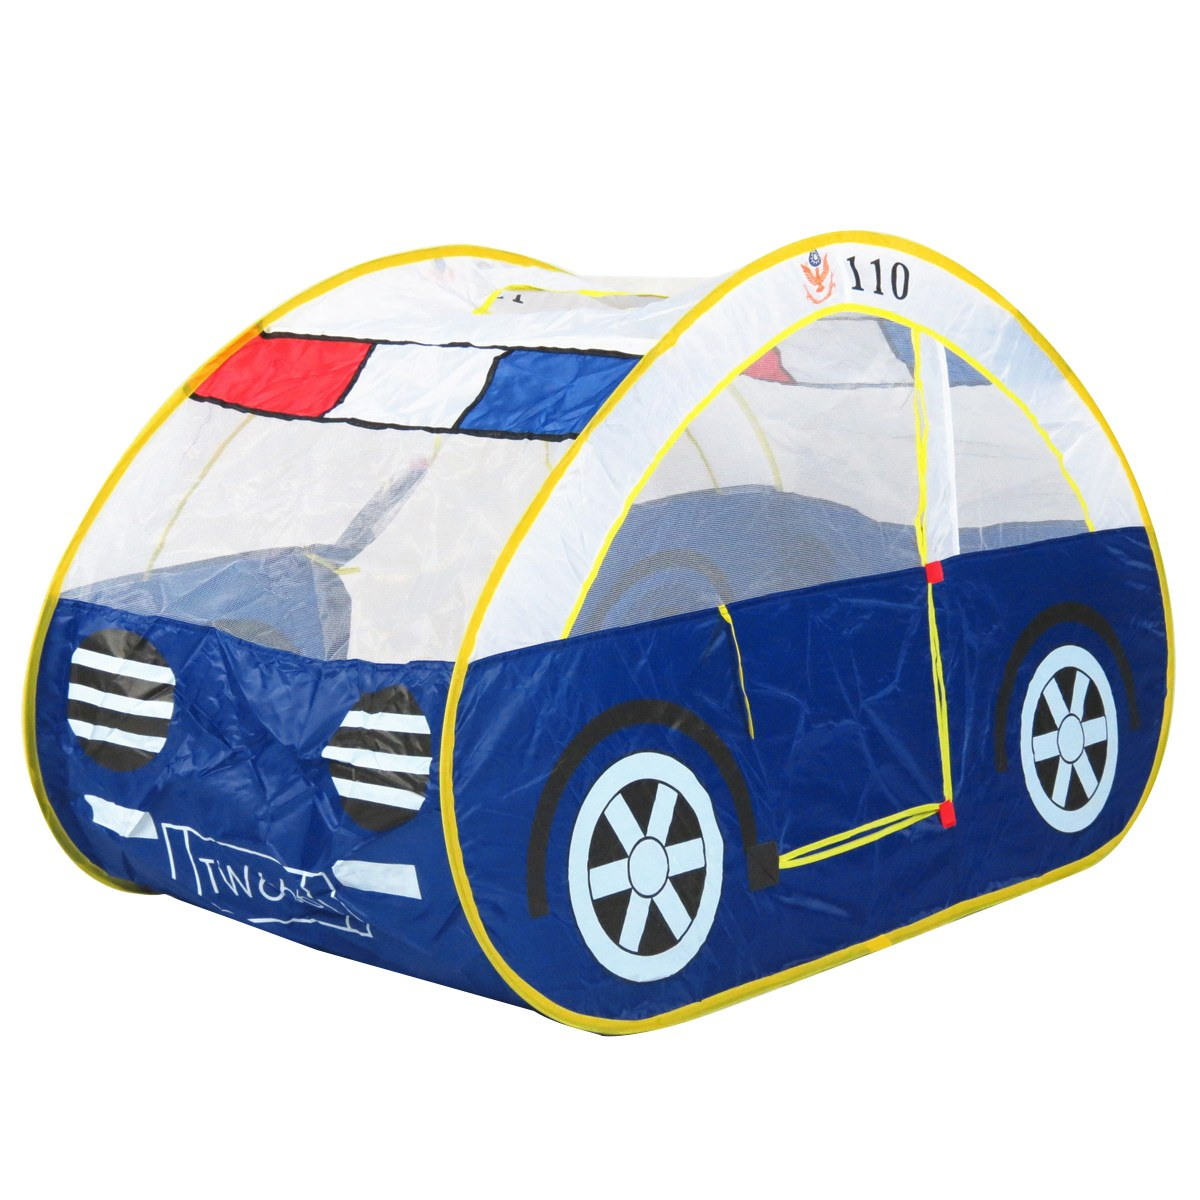 NEW-PORTABLE-FOLDING-POP-UP-PLAY-TENT-CHILDRENS-  sc 1 st  eBay : pop up childrens tent - memphite.com